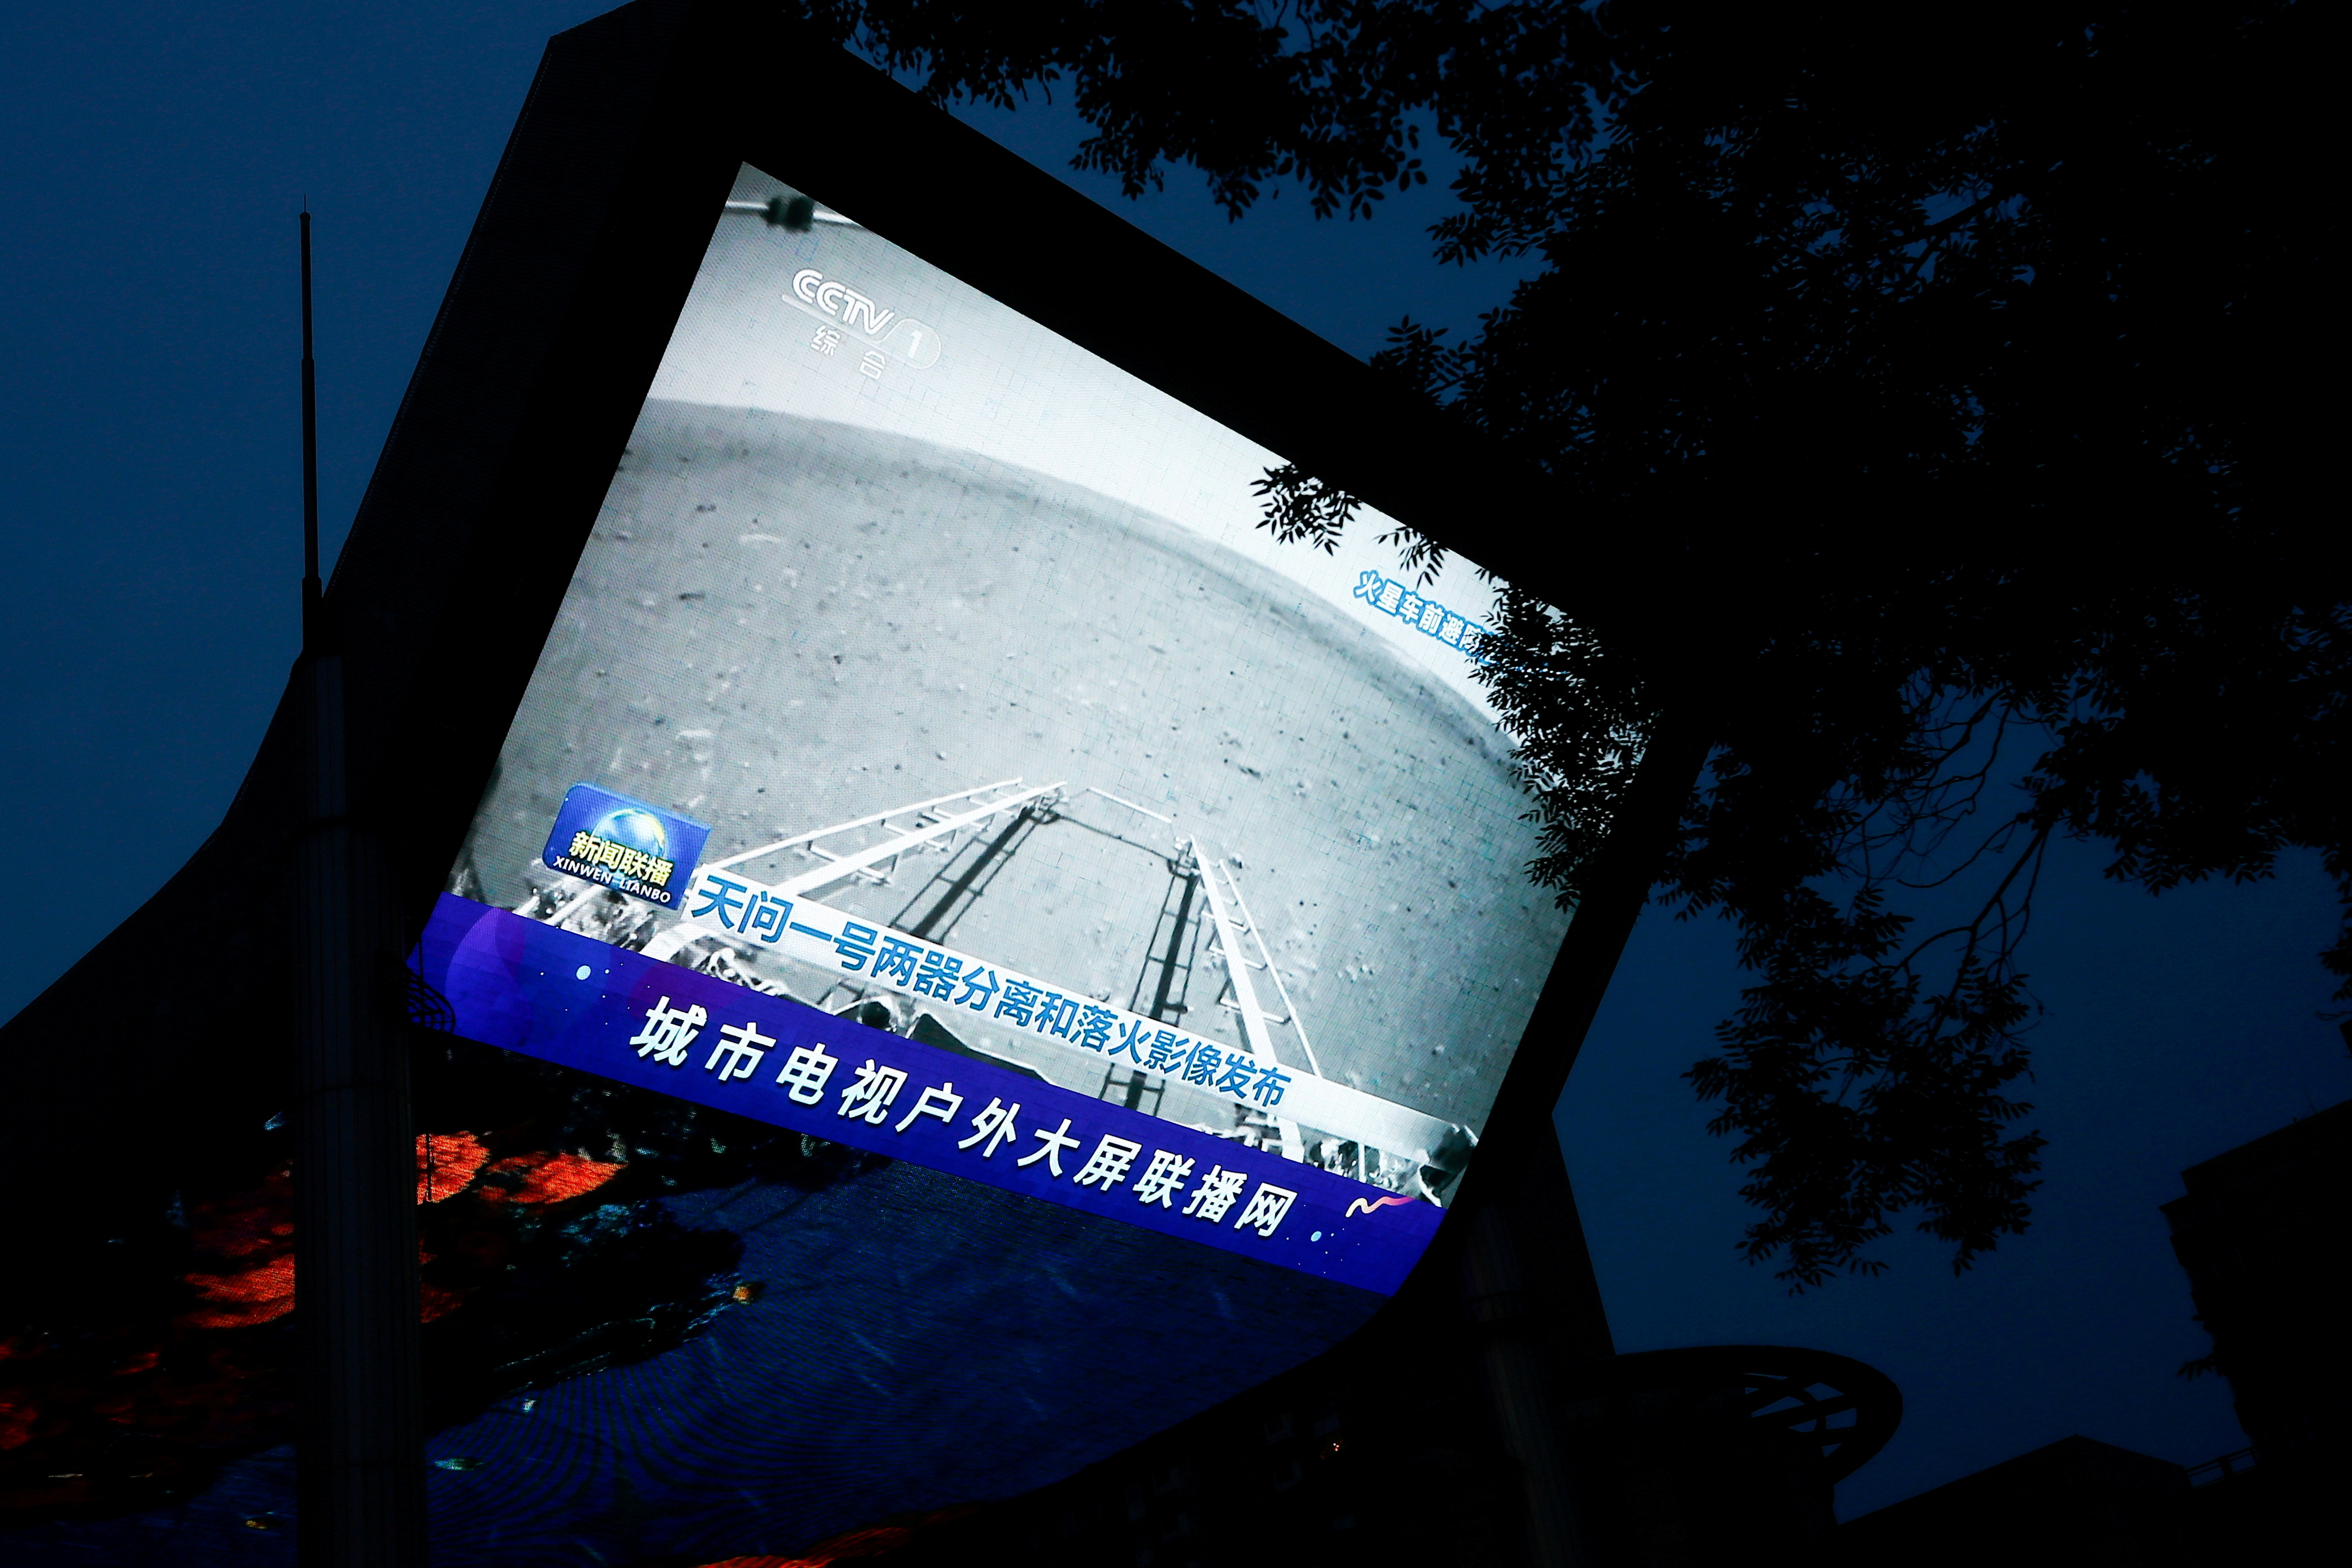 A screen broadcasts a CCTV state media news bulletin, showing an image of Mars taken by Chinese Mars rover Zhurong as part of the Tianwen-1 mission, in Beijing, China, May 19, 2021. REUTERS/Thomas Peter